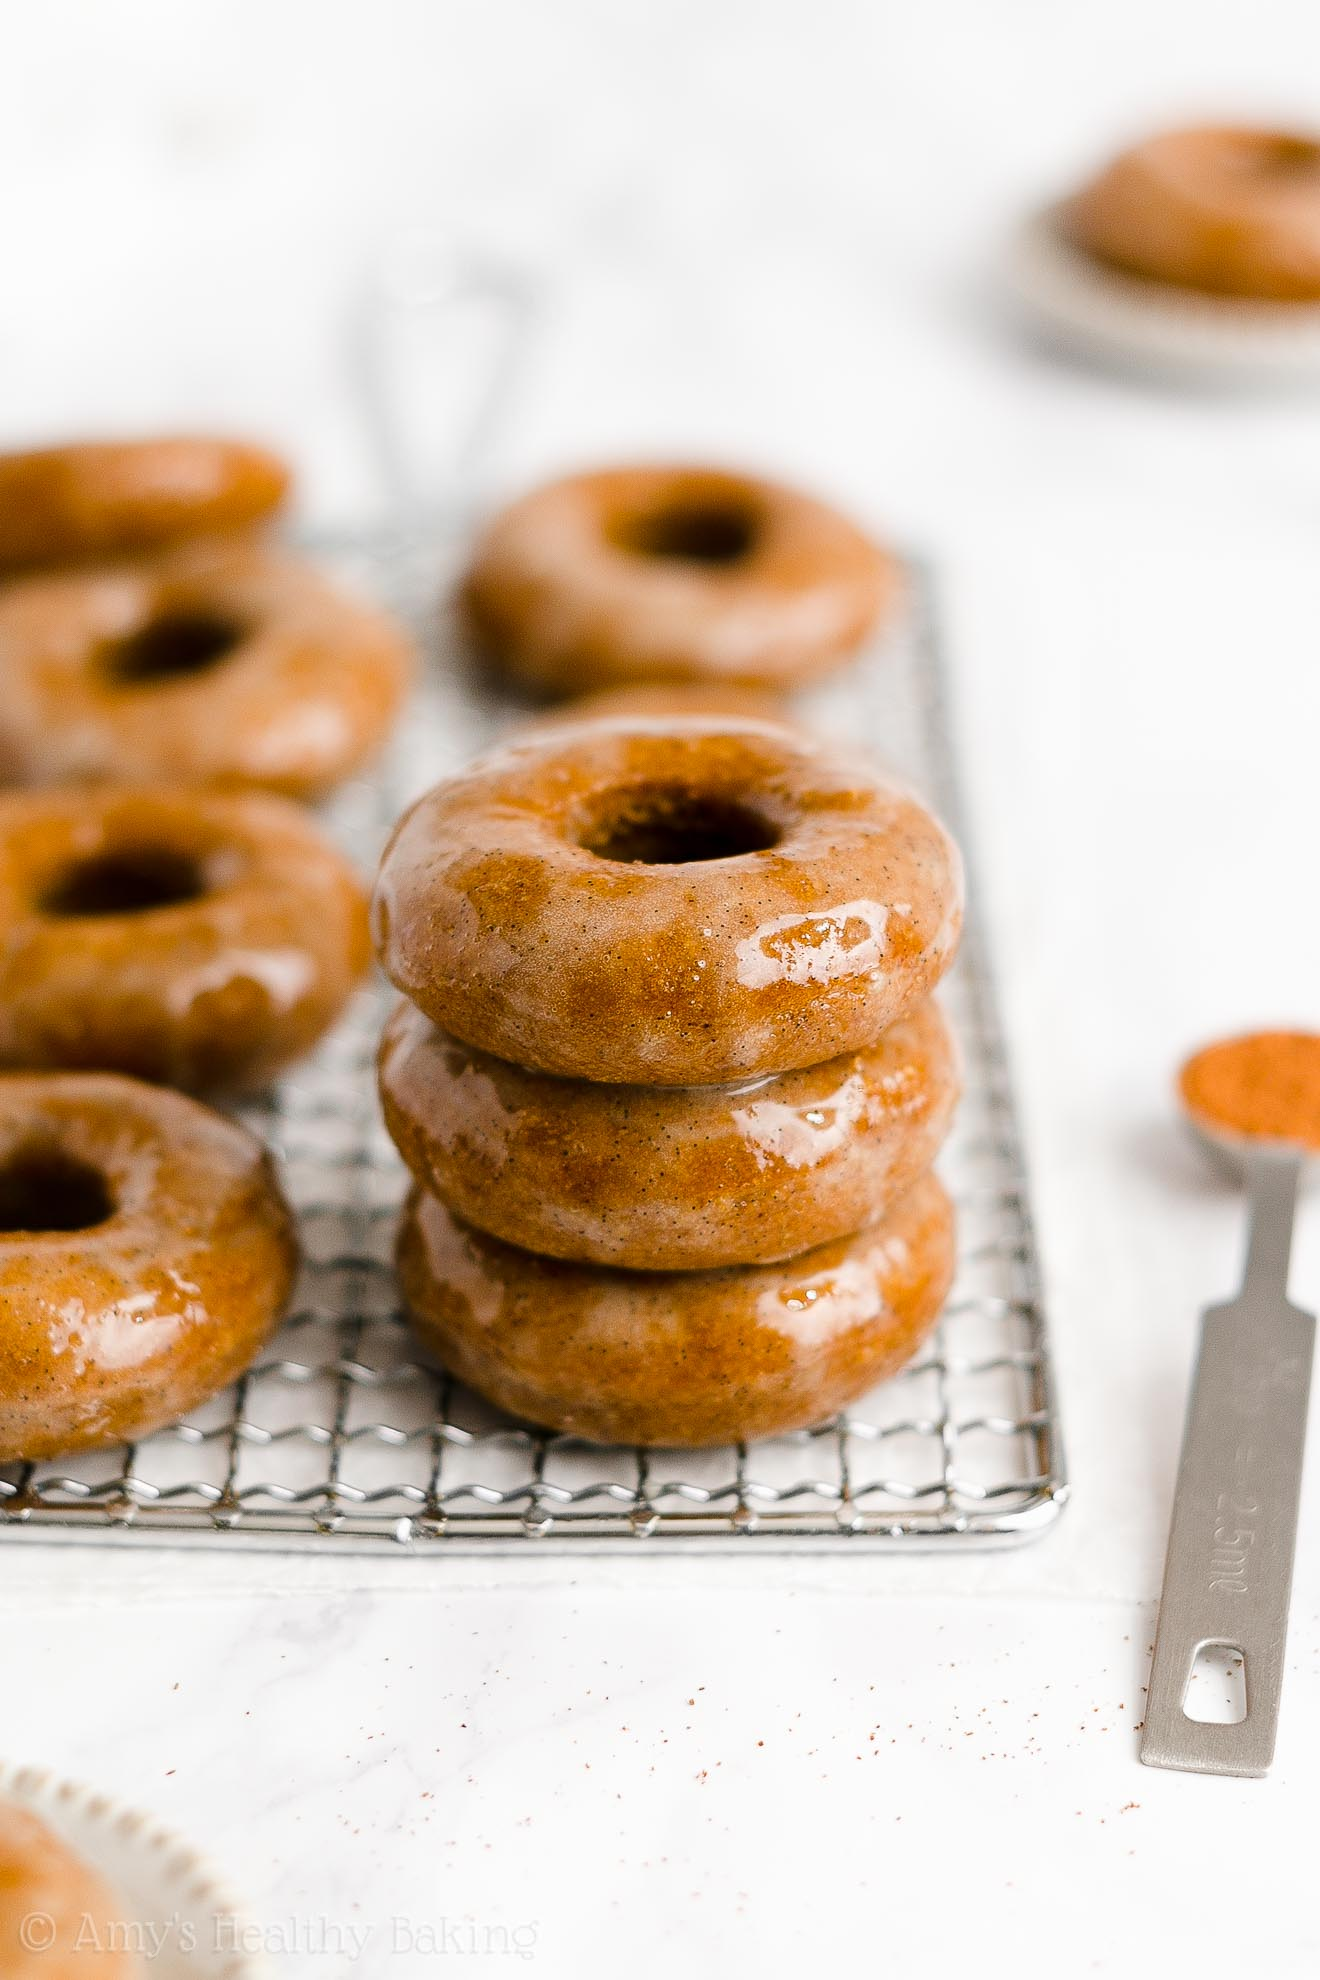 BEST EVER Healthy Vegan Baked Pumpkin Spice Donuts with Sugar Free Glaze